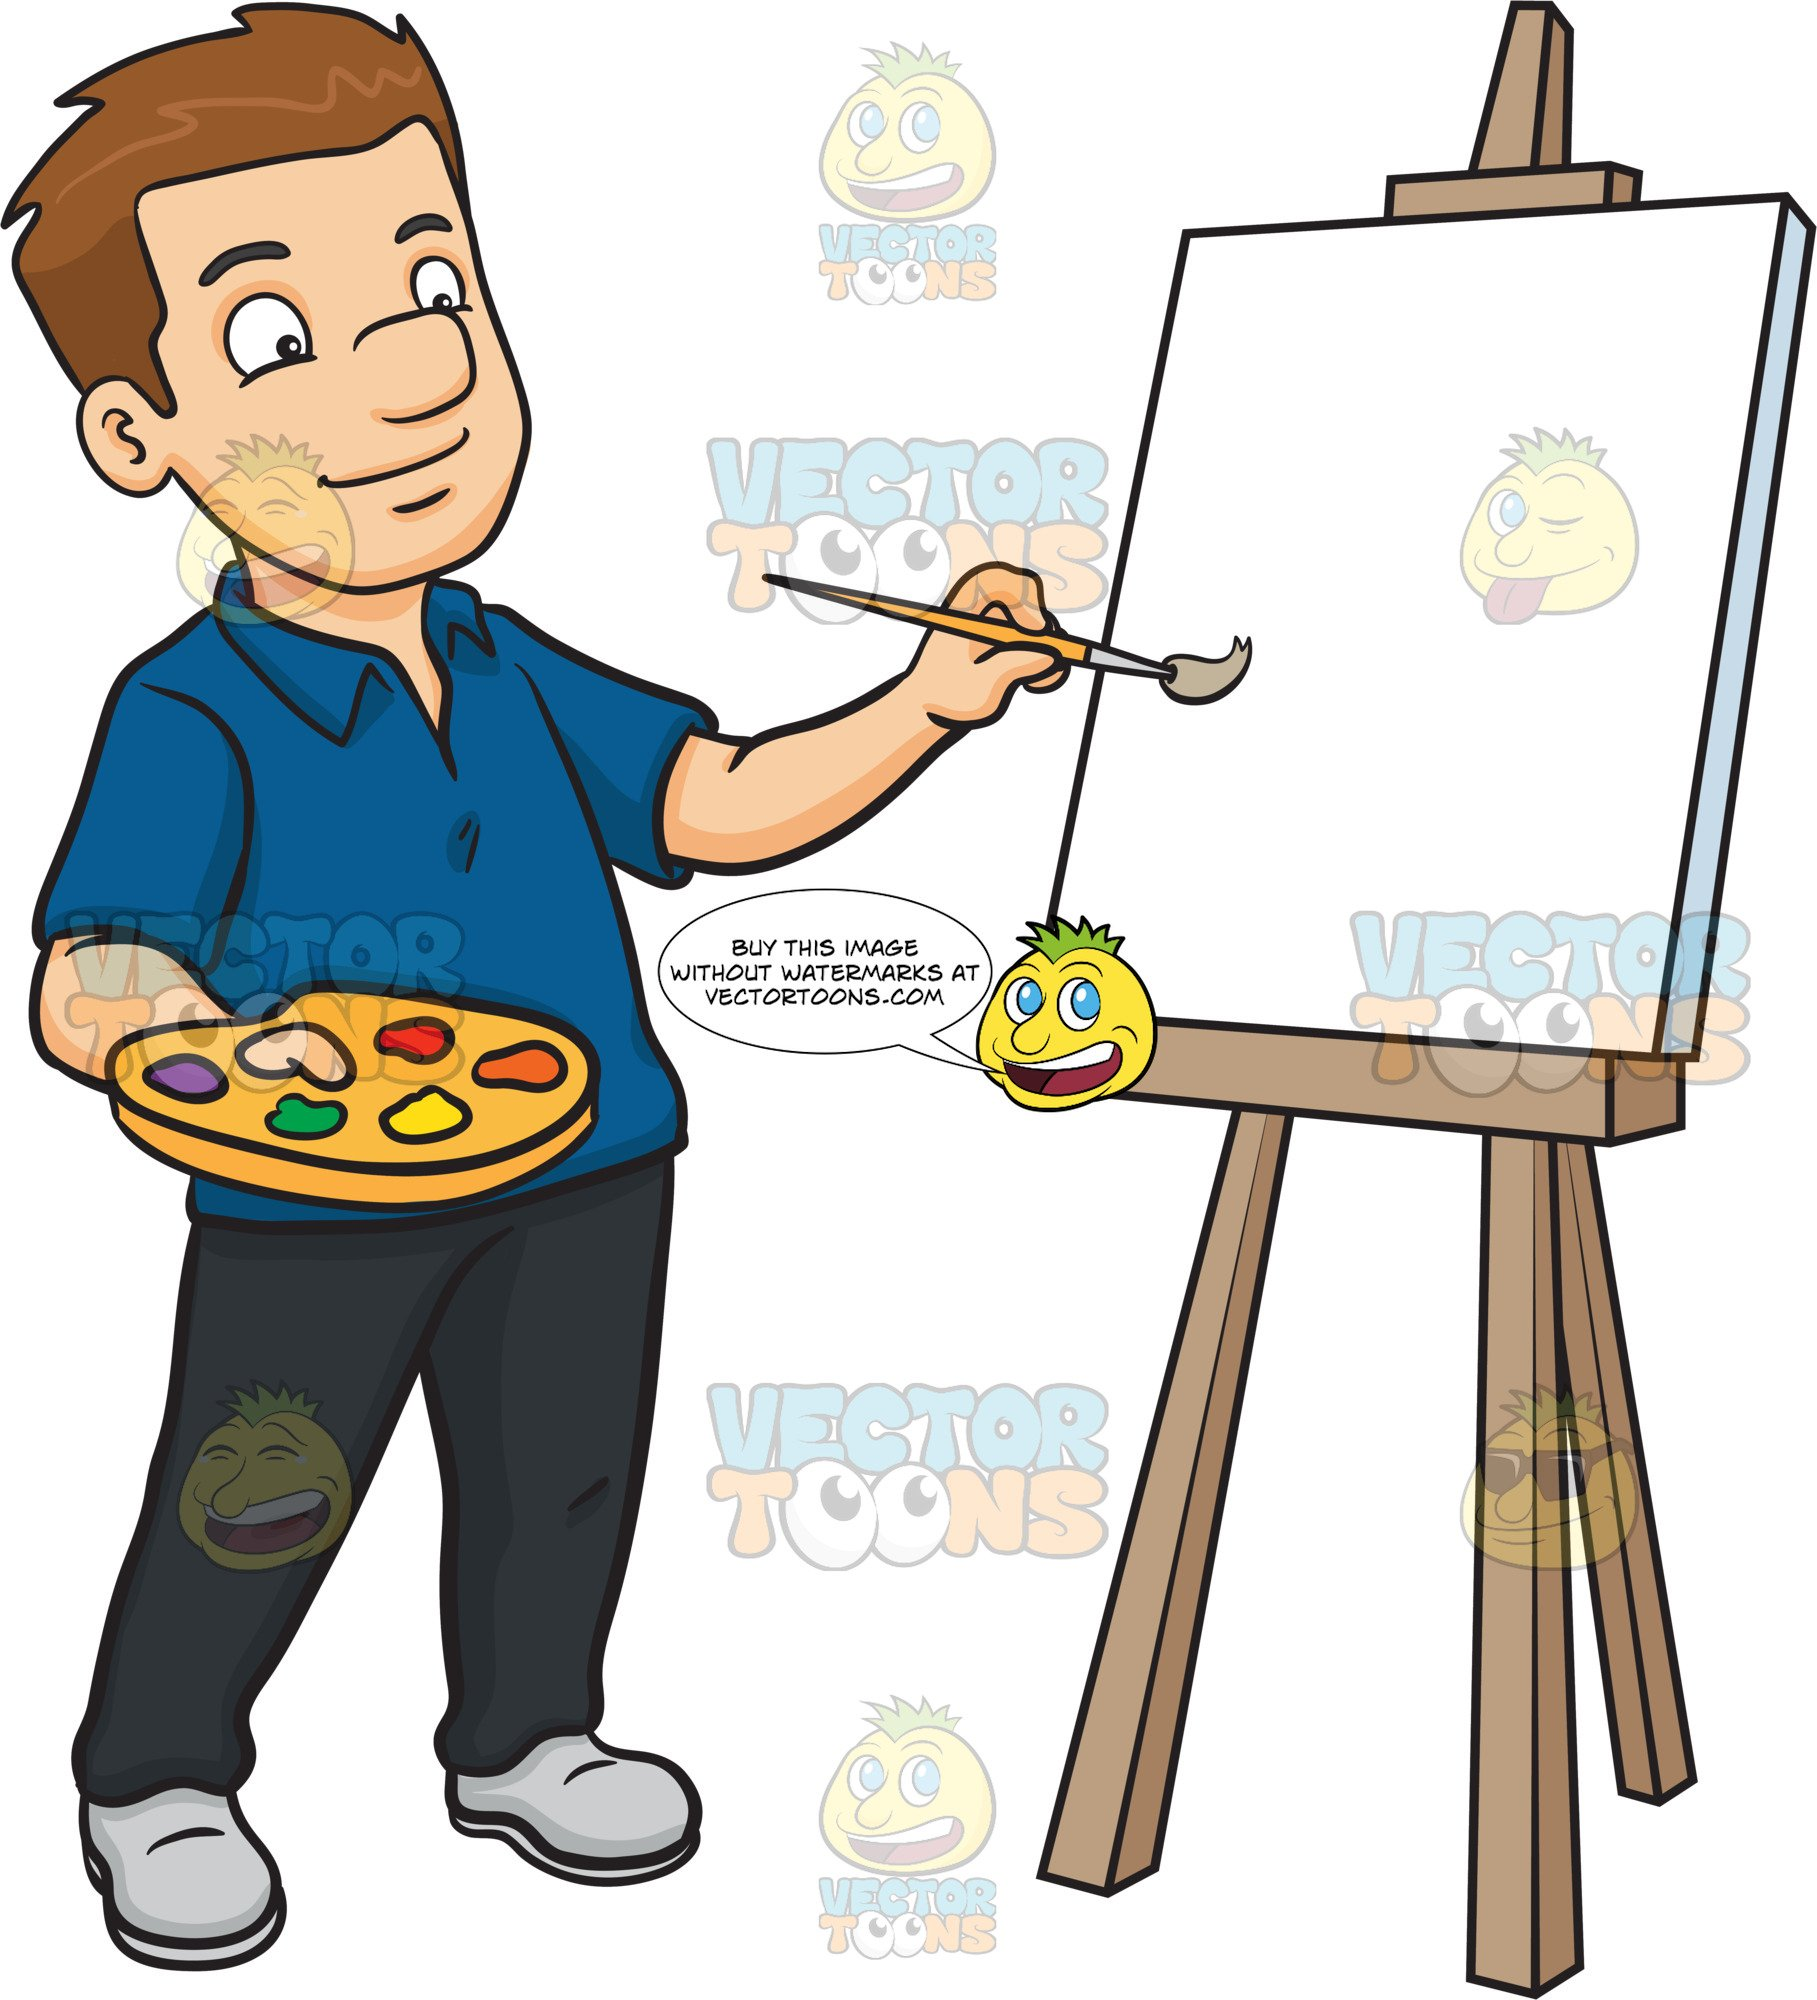 Blank canvas clipart picture free library A Man Painting On A Blank Canvas picture free library